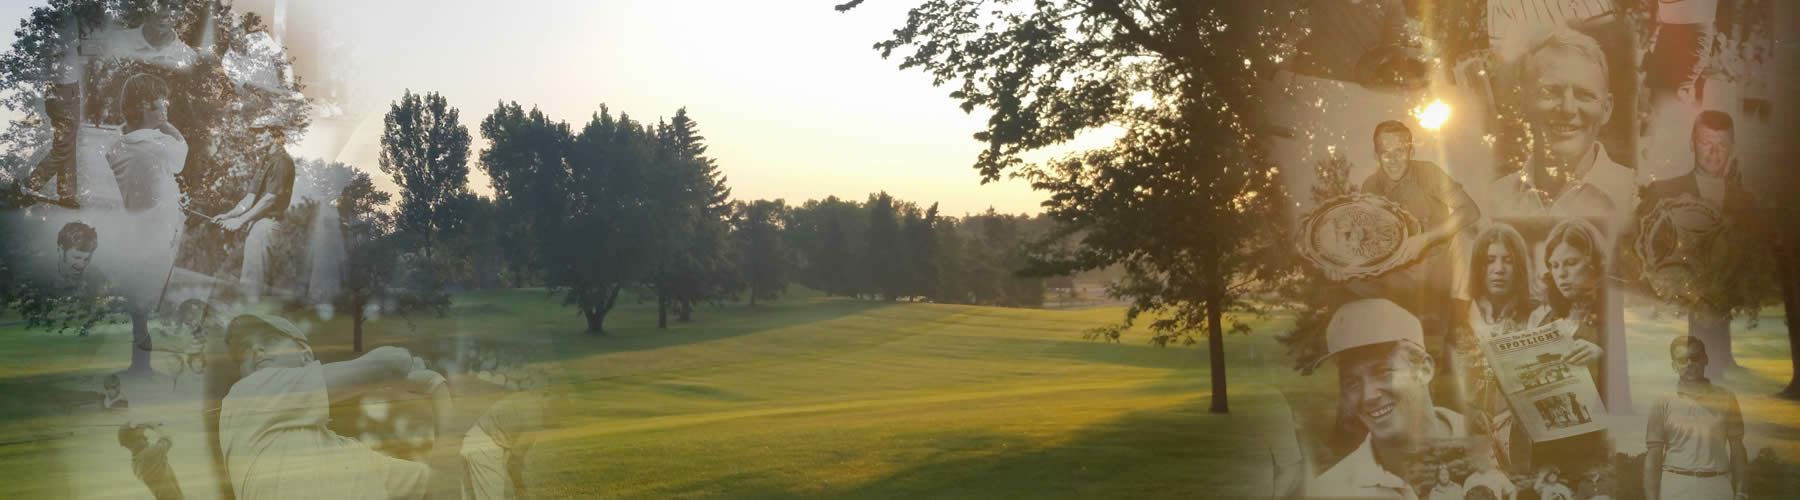 Learn about the history of the Pine to Palm Golf Tournament in Detroit Lakes, Minnesota.